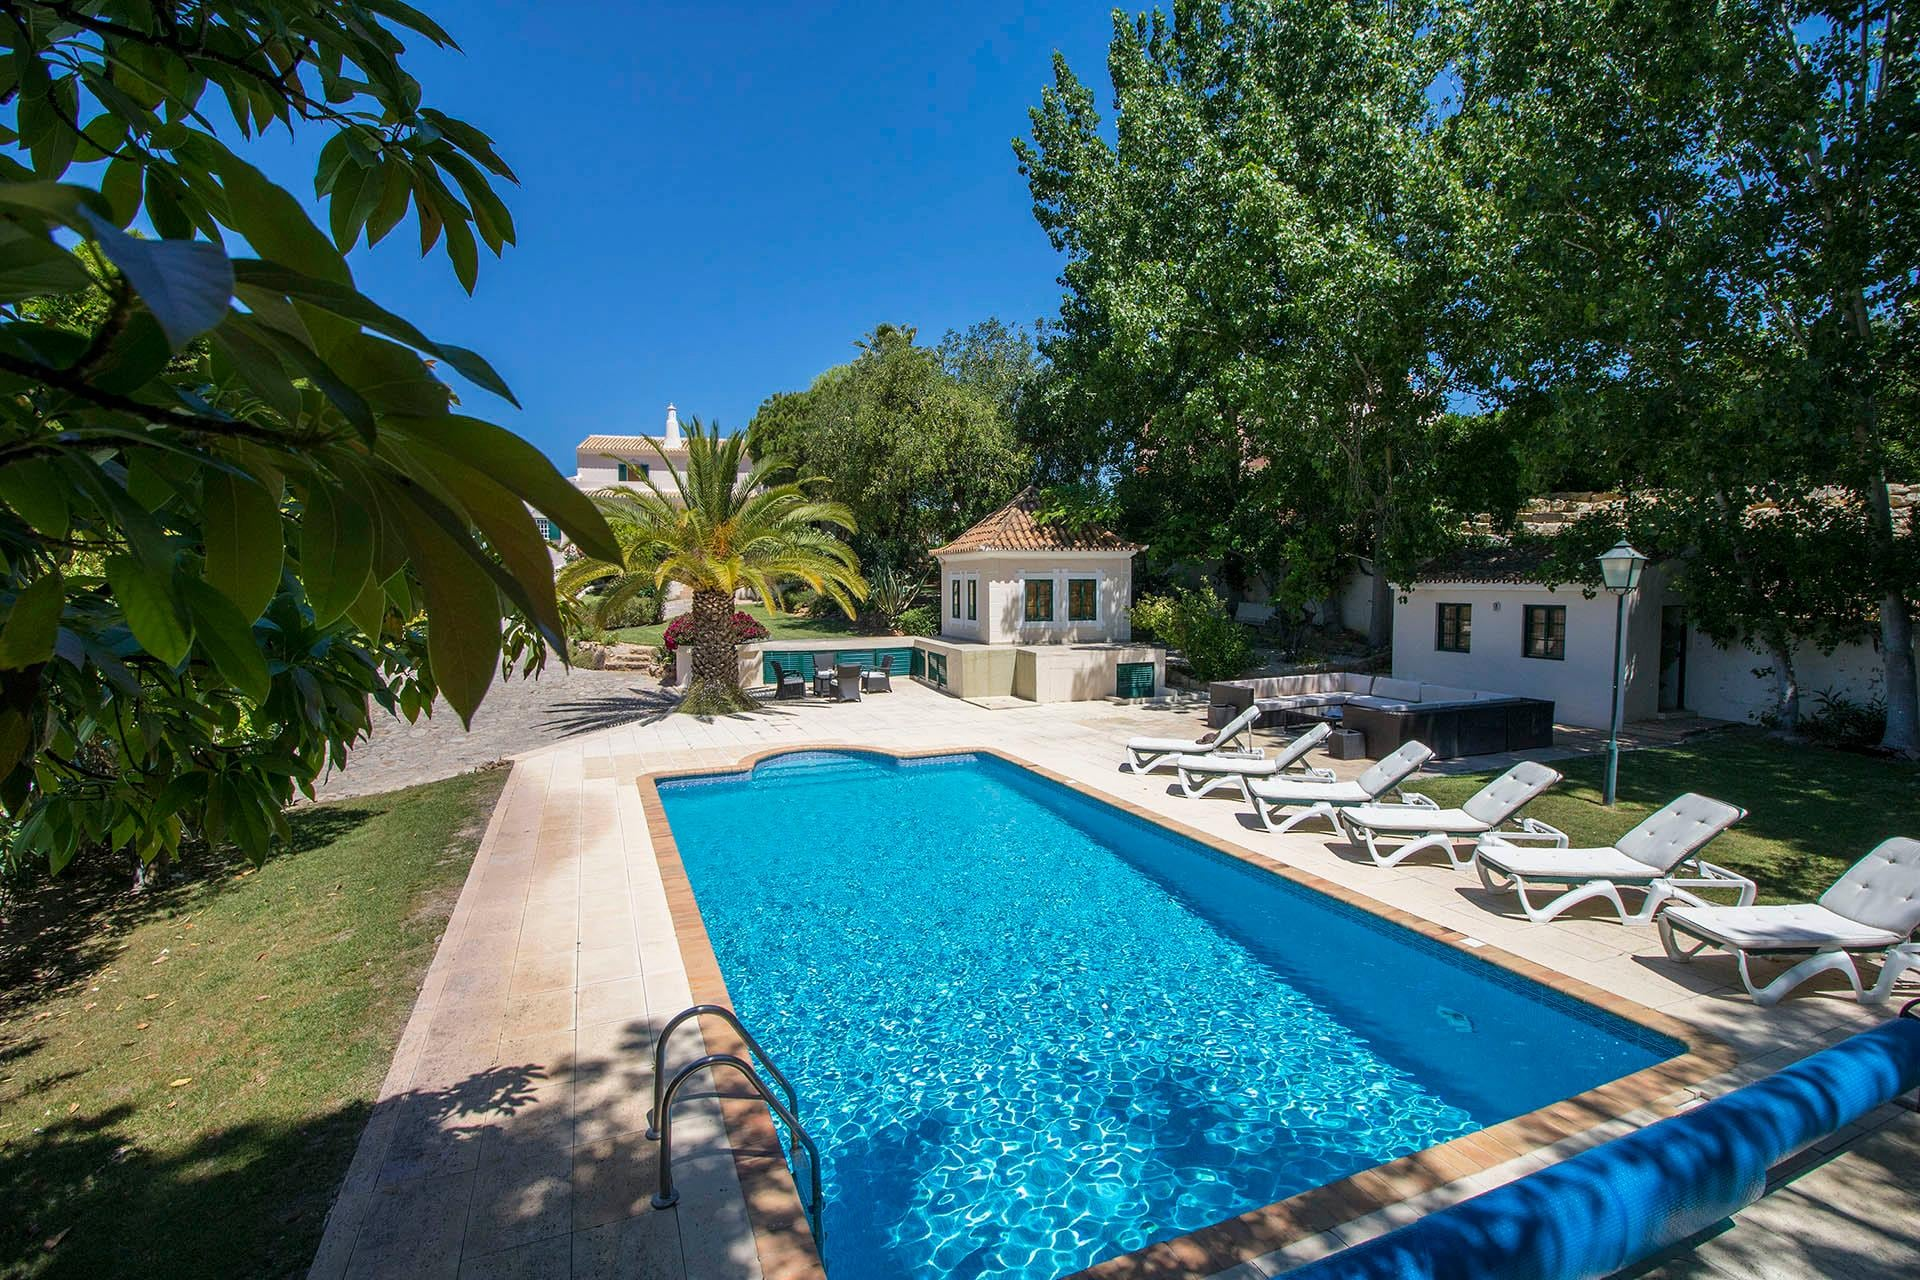 Delightful, Stylish Villa with Fabulous Pool and Garden